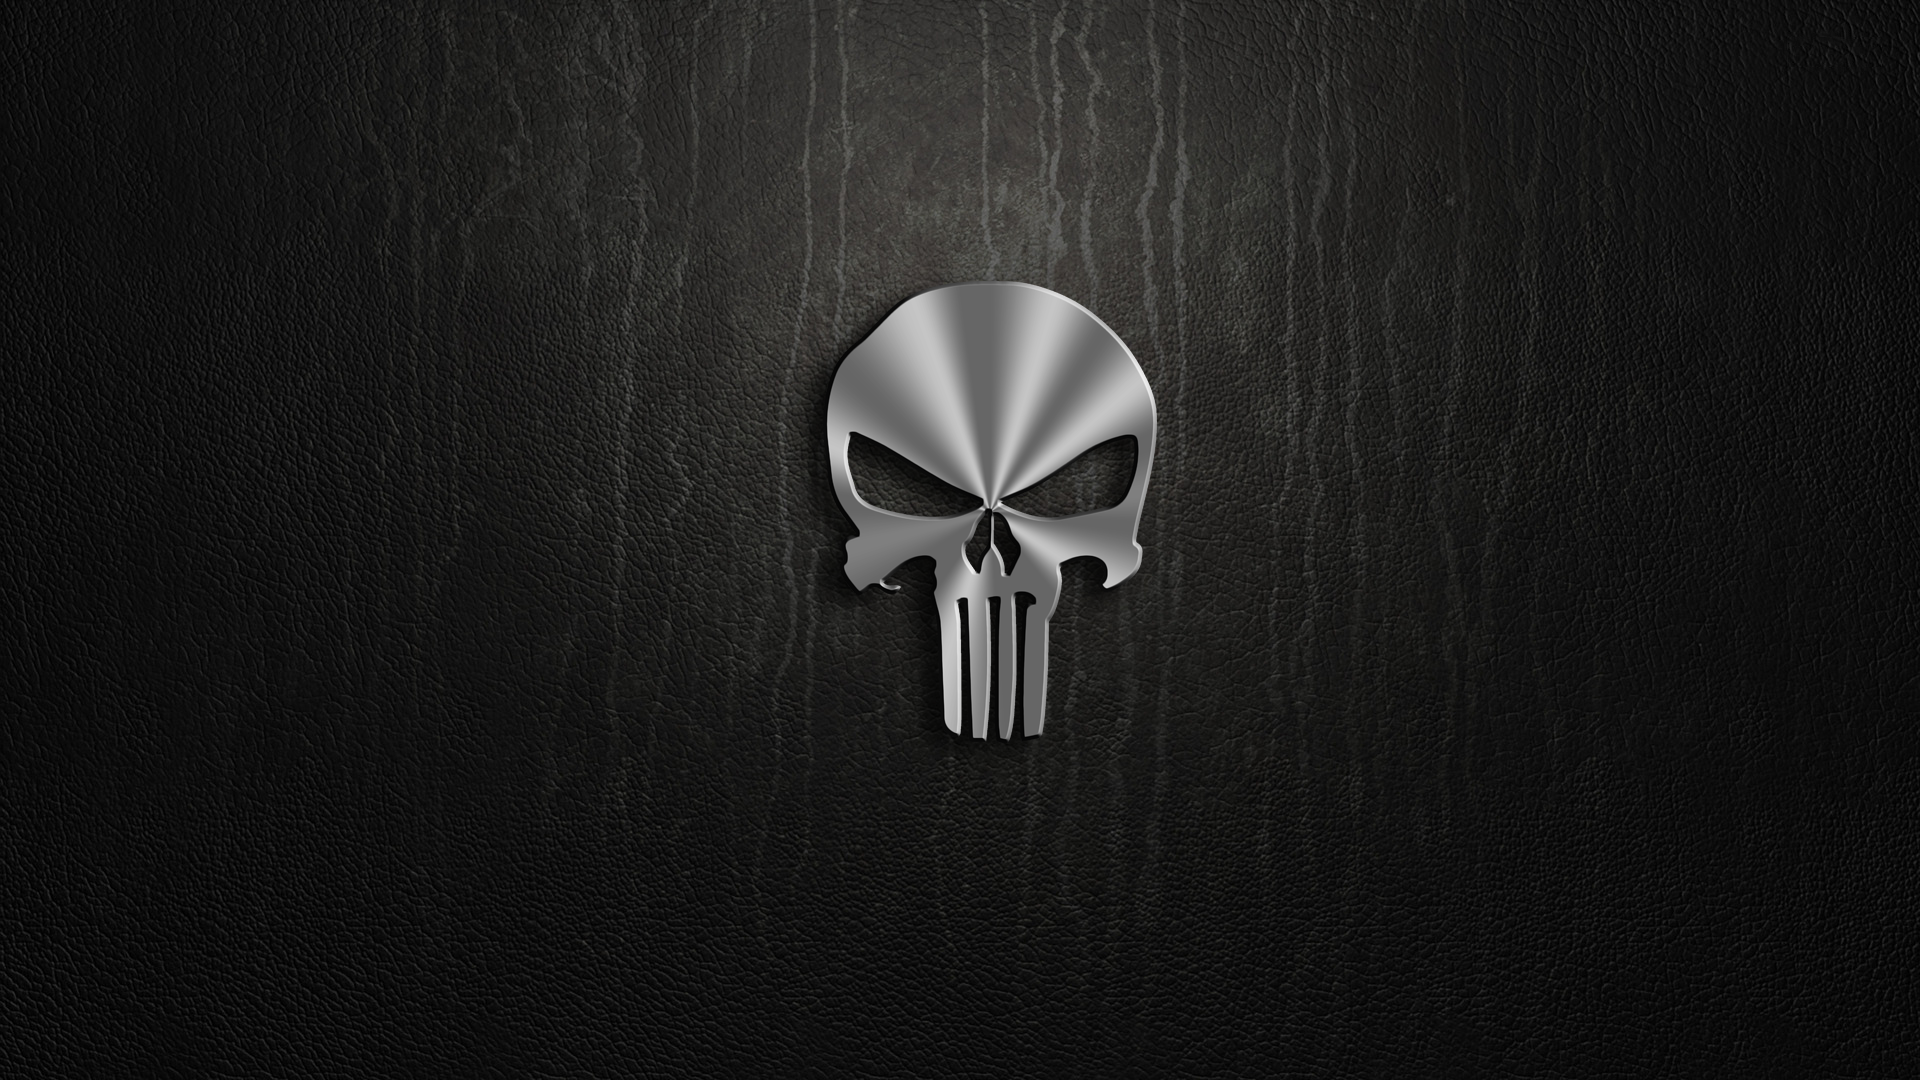 Punisher Skull Wallpaper